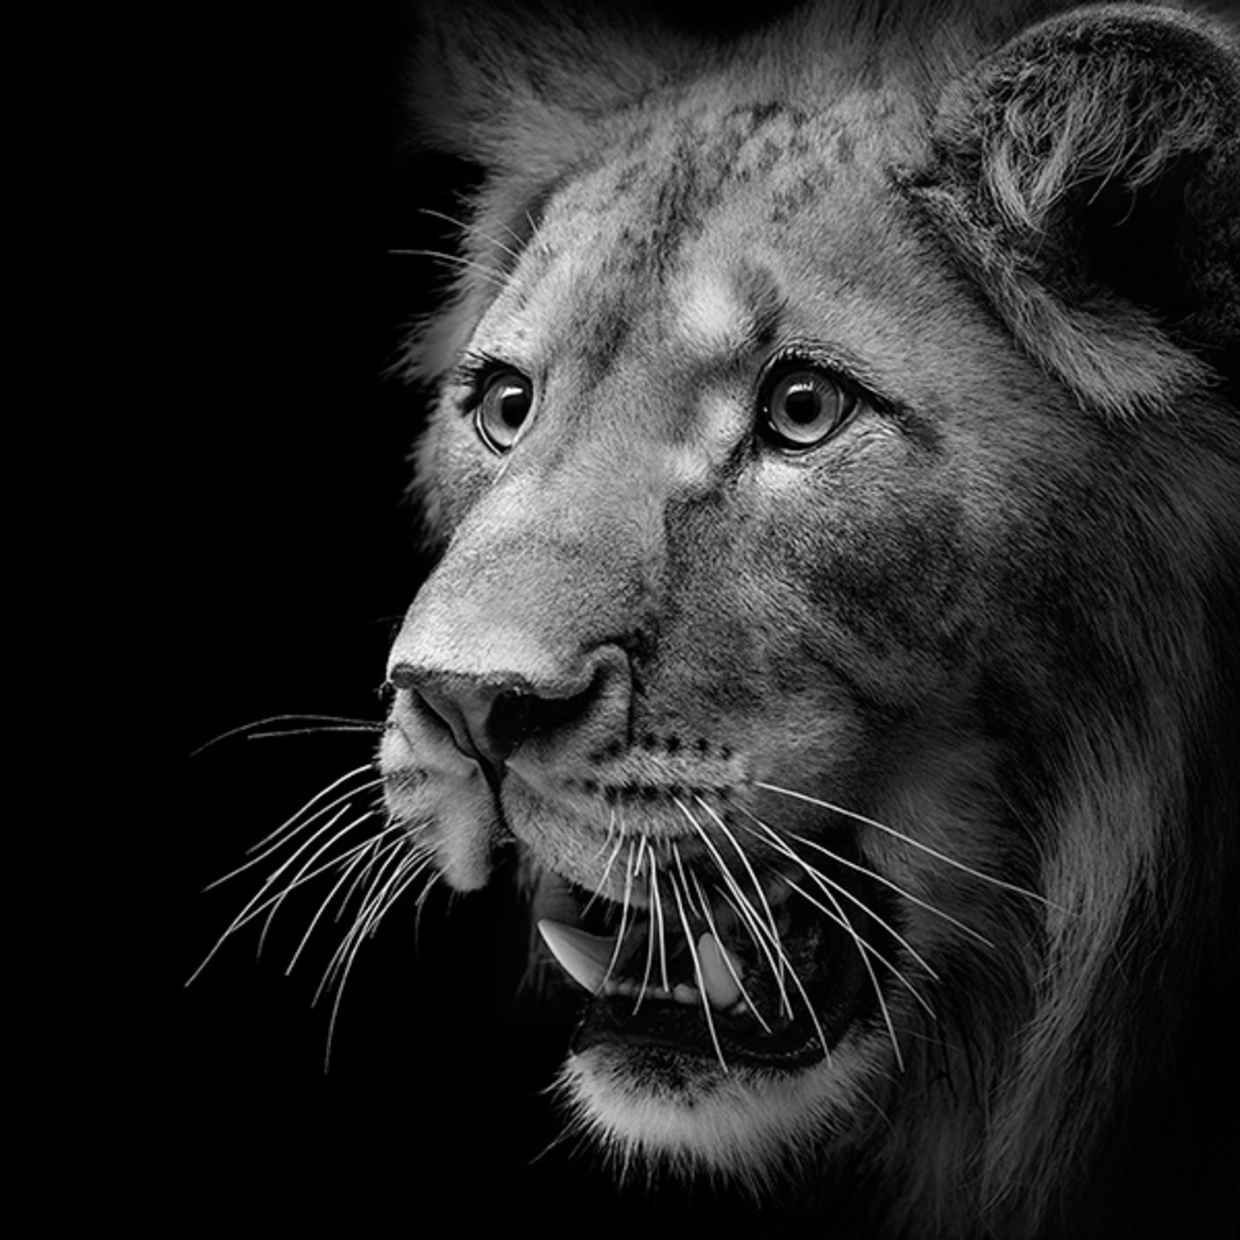 Amazing Black And White Animal Photography By Lukas Holas Animal - Breathtaking black and white animal portraits by lukas holas